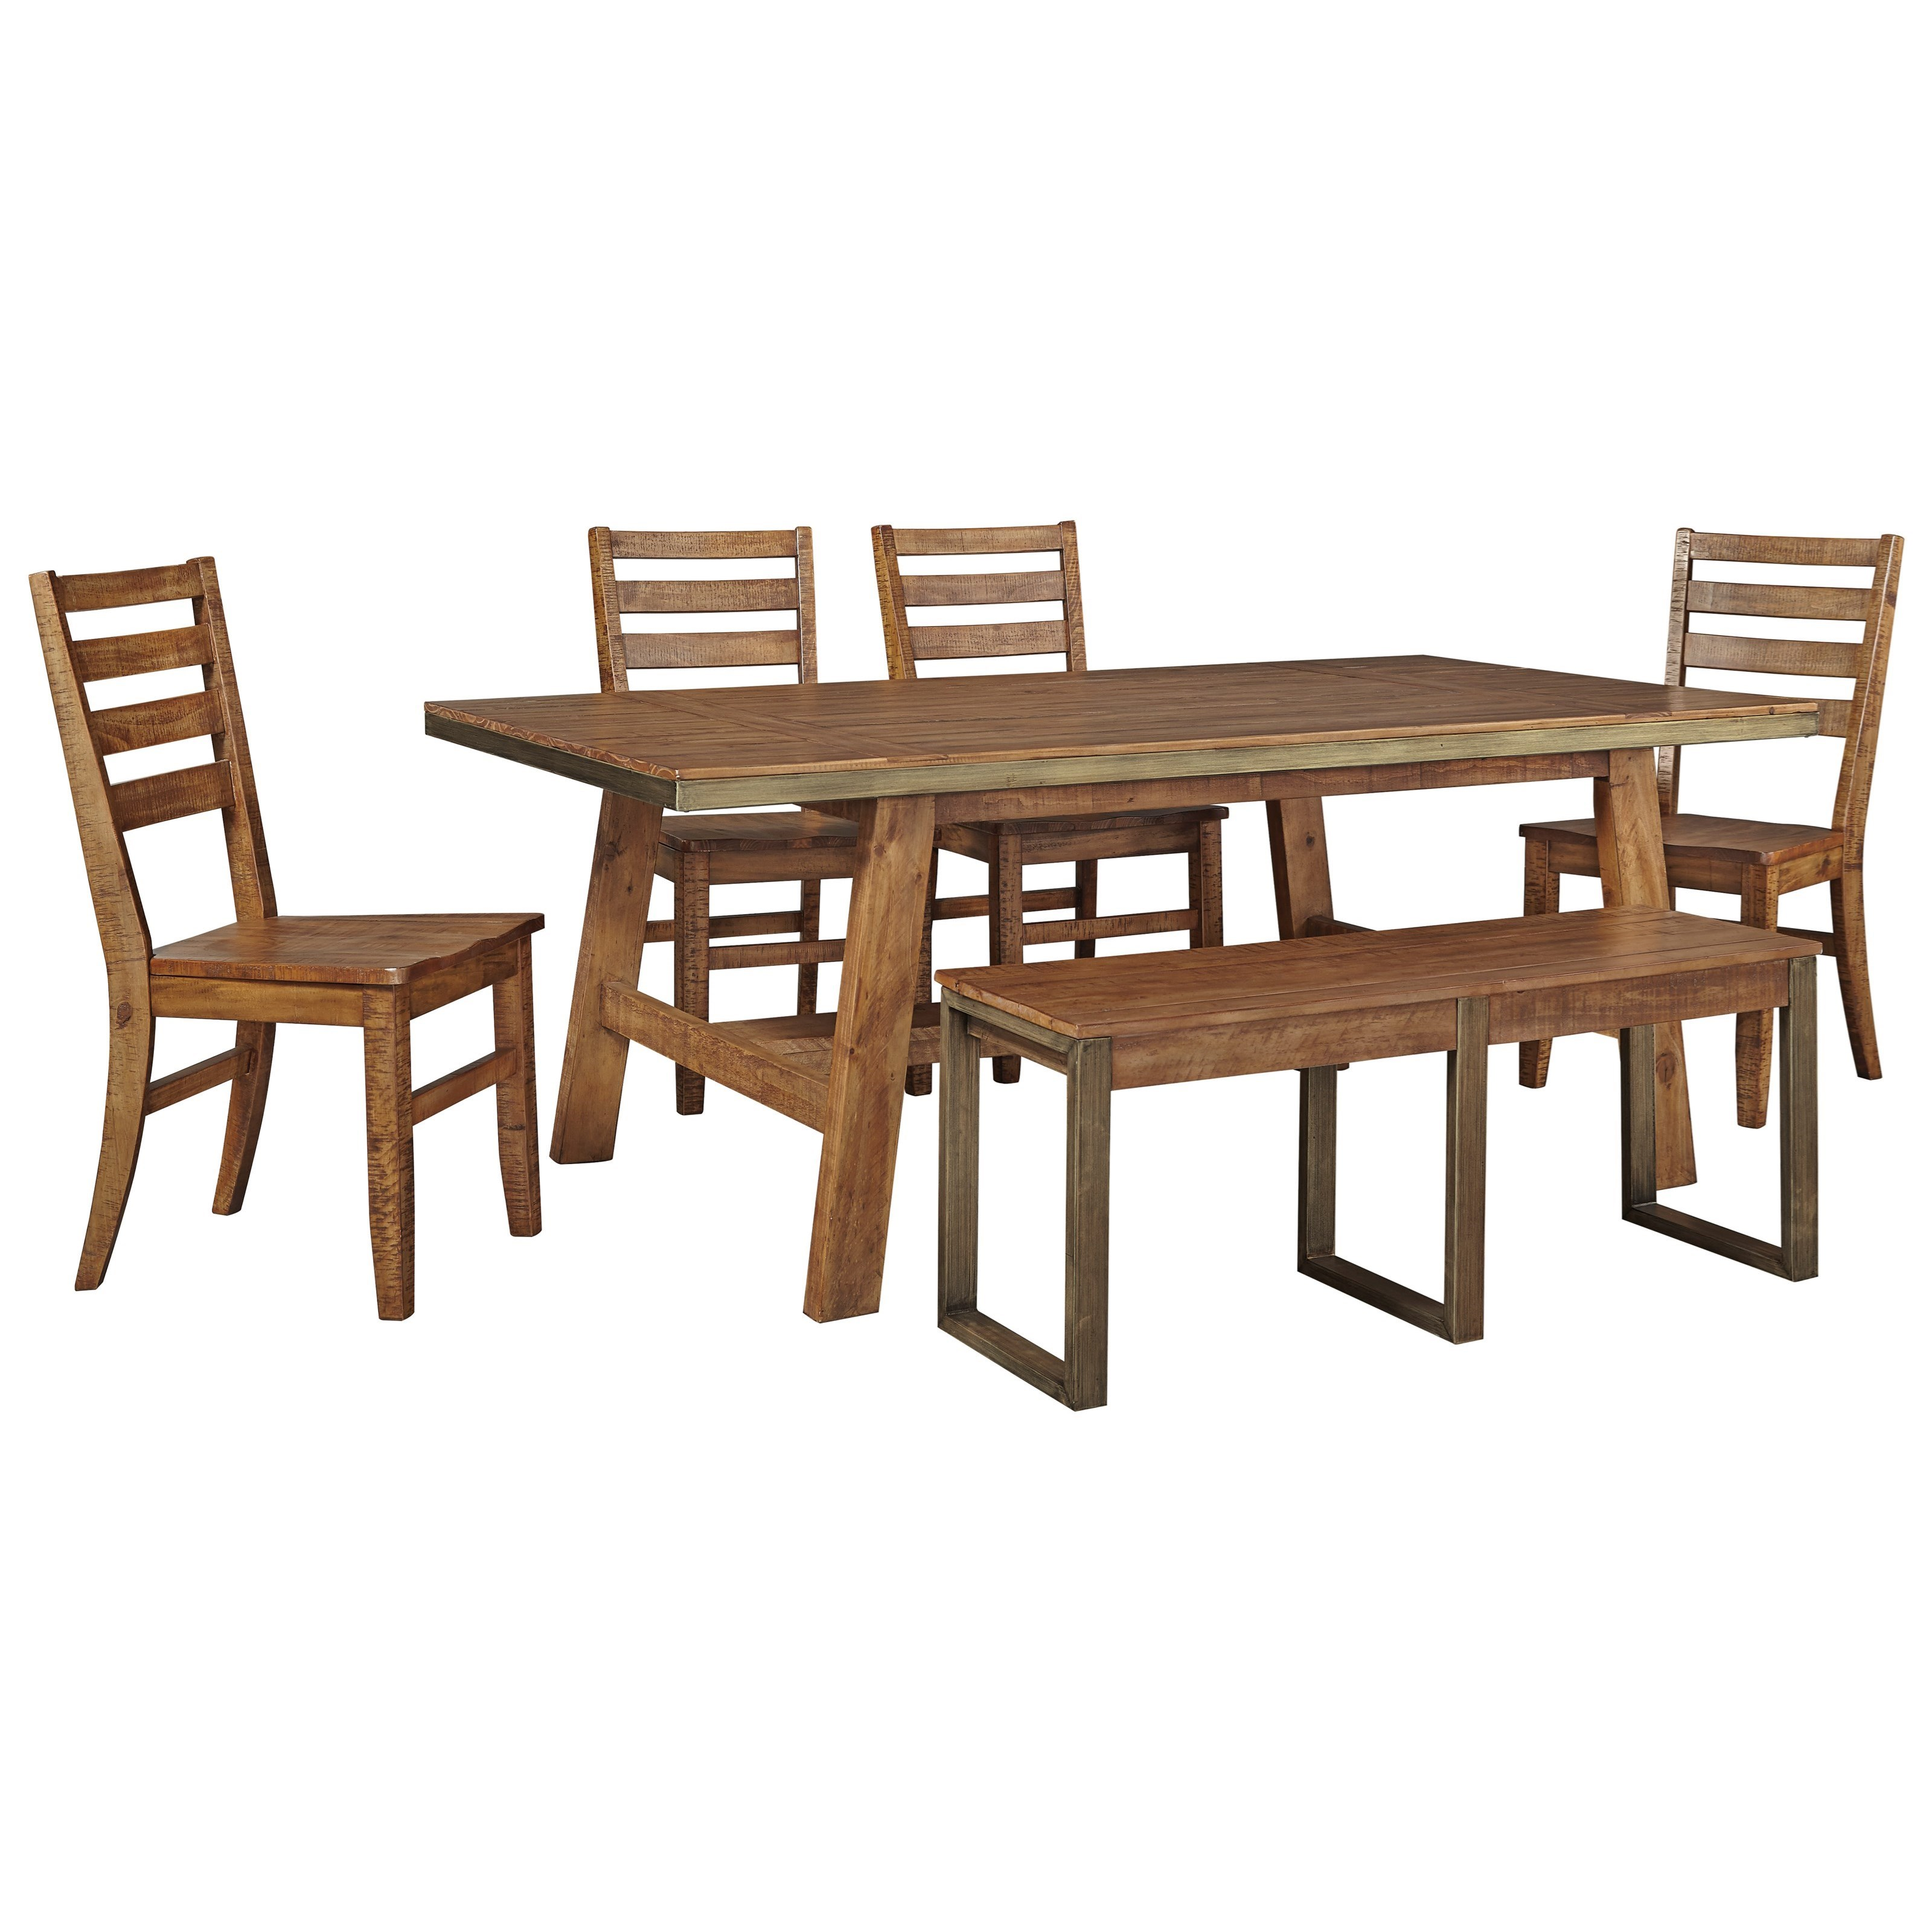 Signature Design by Ashley Don 6 Piece Solid Wood